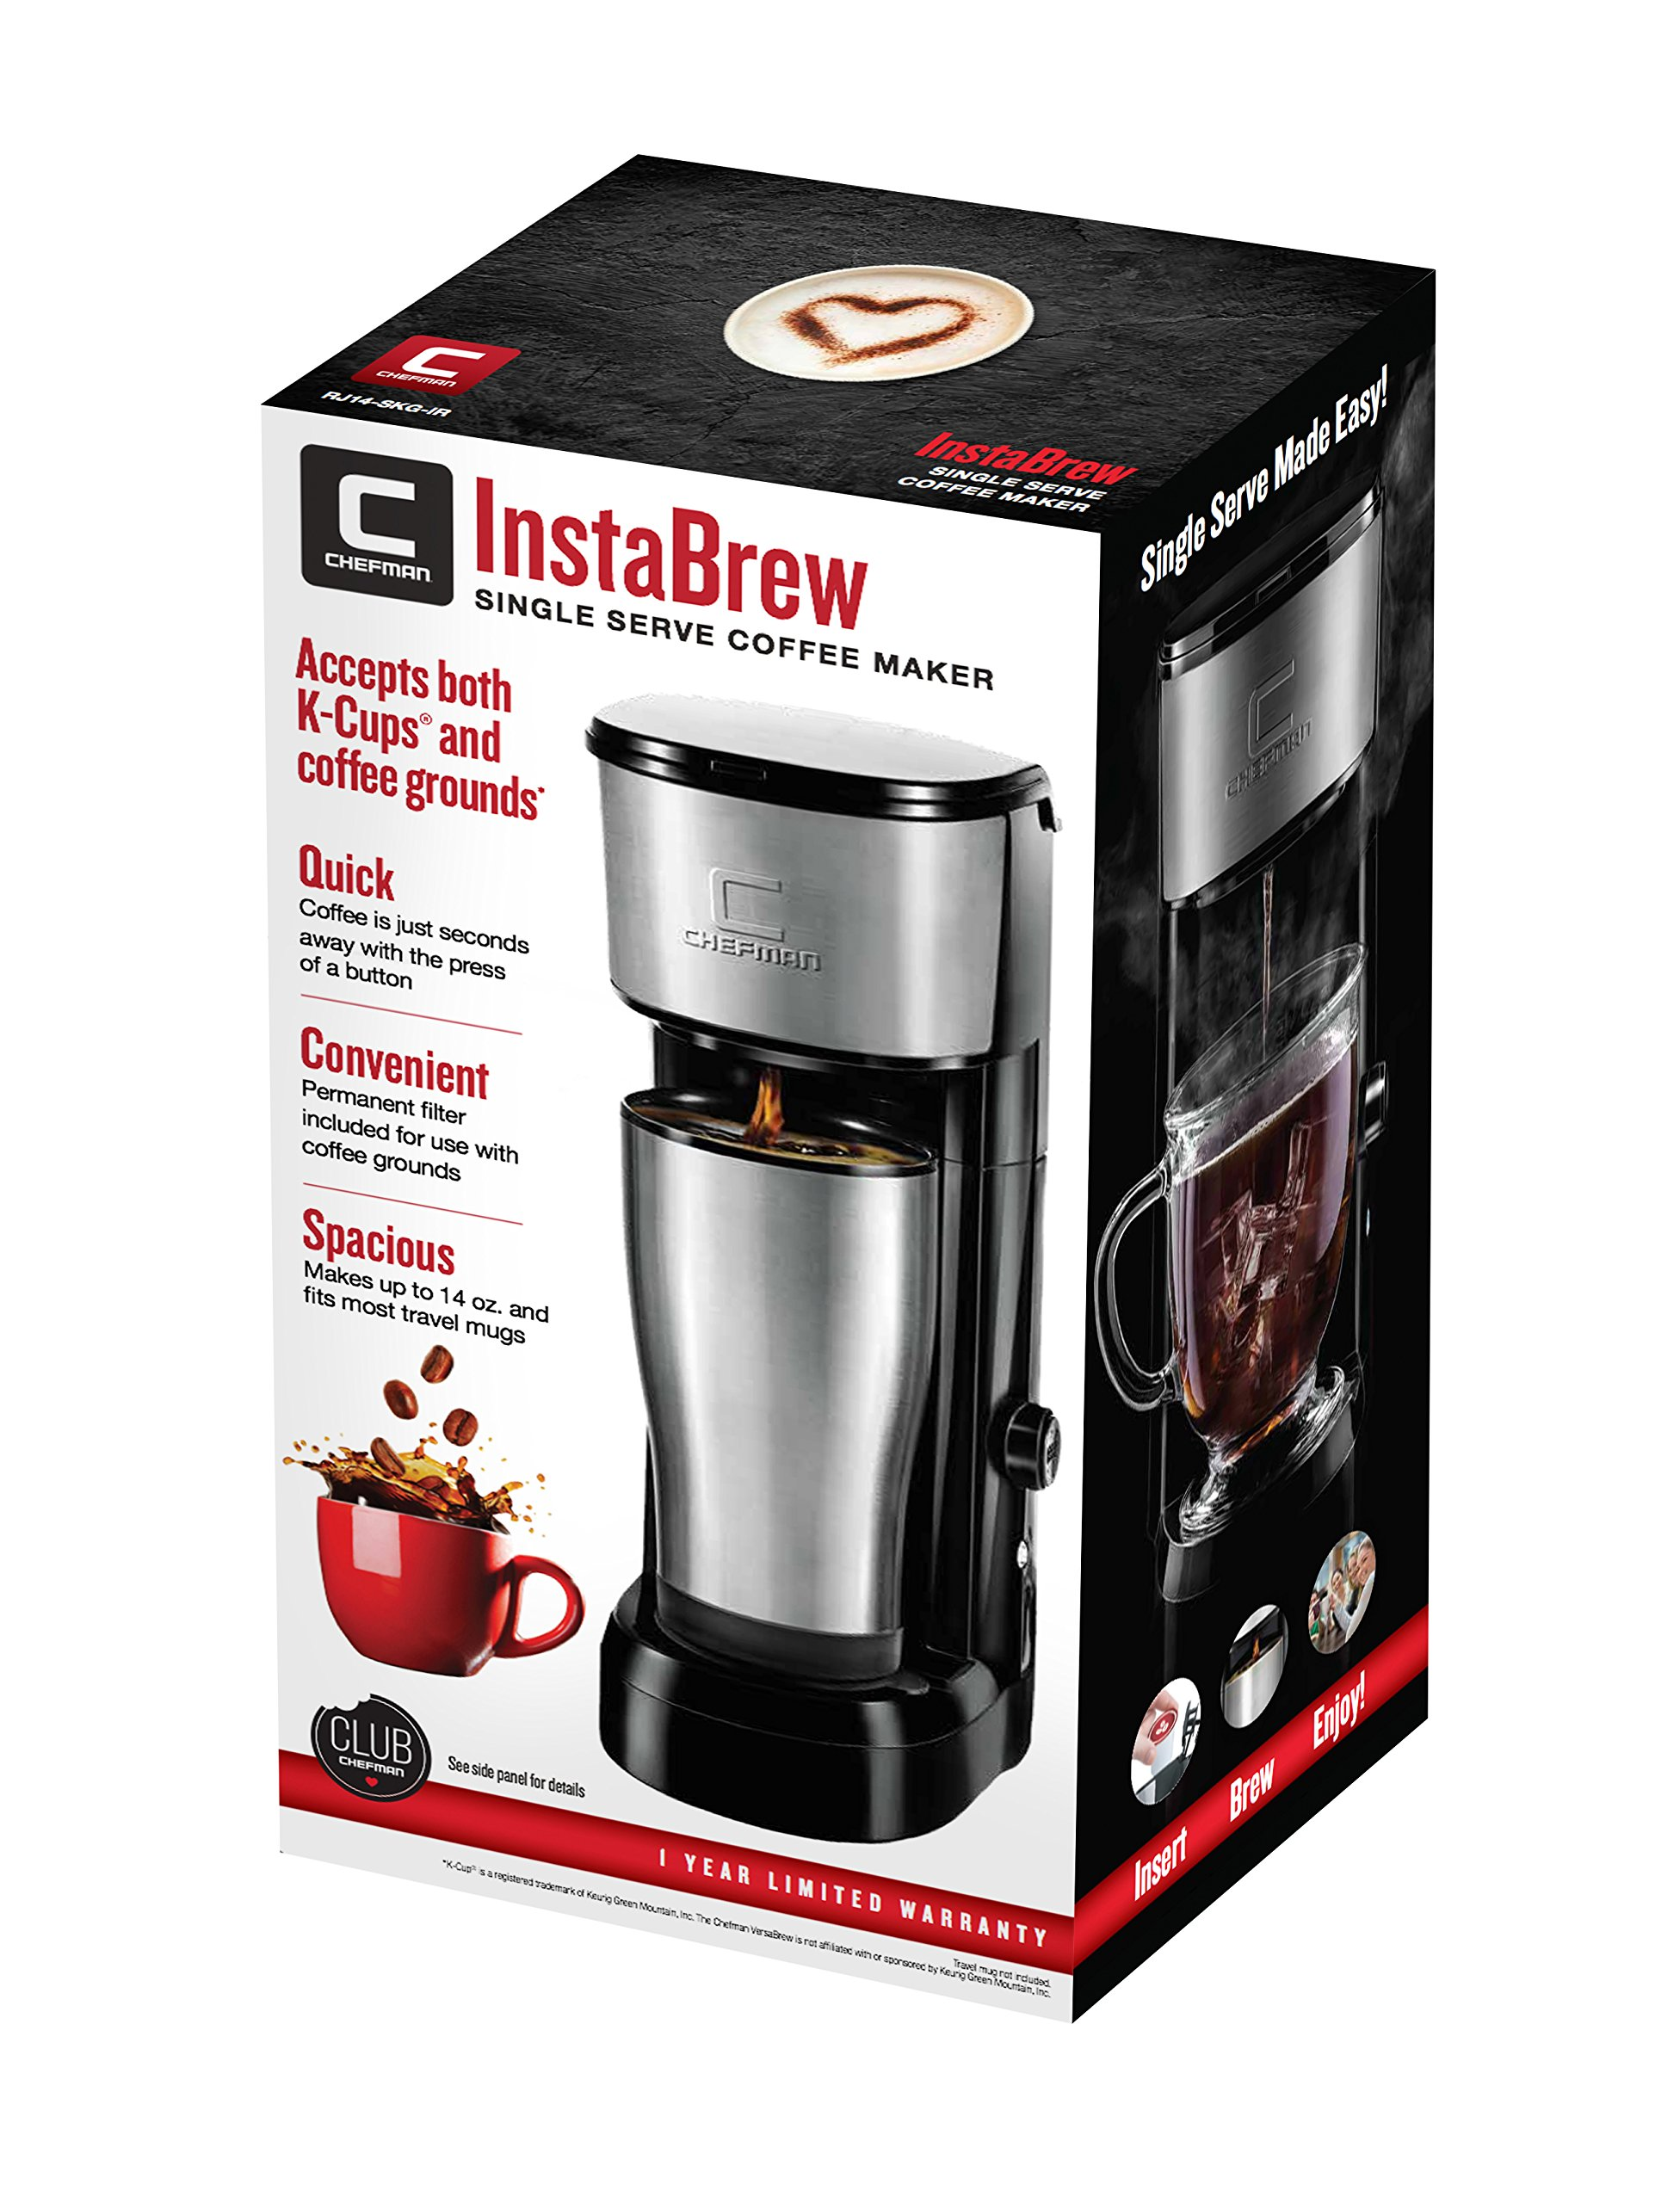 Chefman Coffee Maker K-Cup InstaBrew Brewer - Free Filter Included For Use With Coffee Grounds - Instant Reboil - Single Serve-Mug NOT Included by Chefman (Image #7)